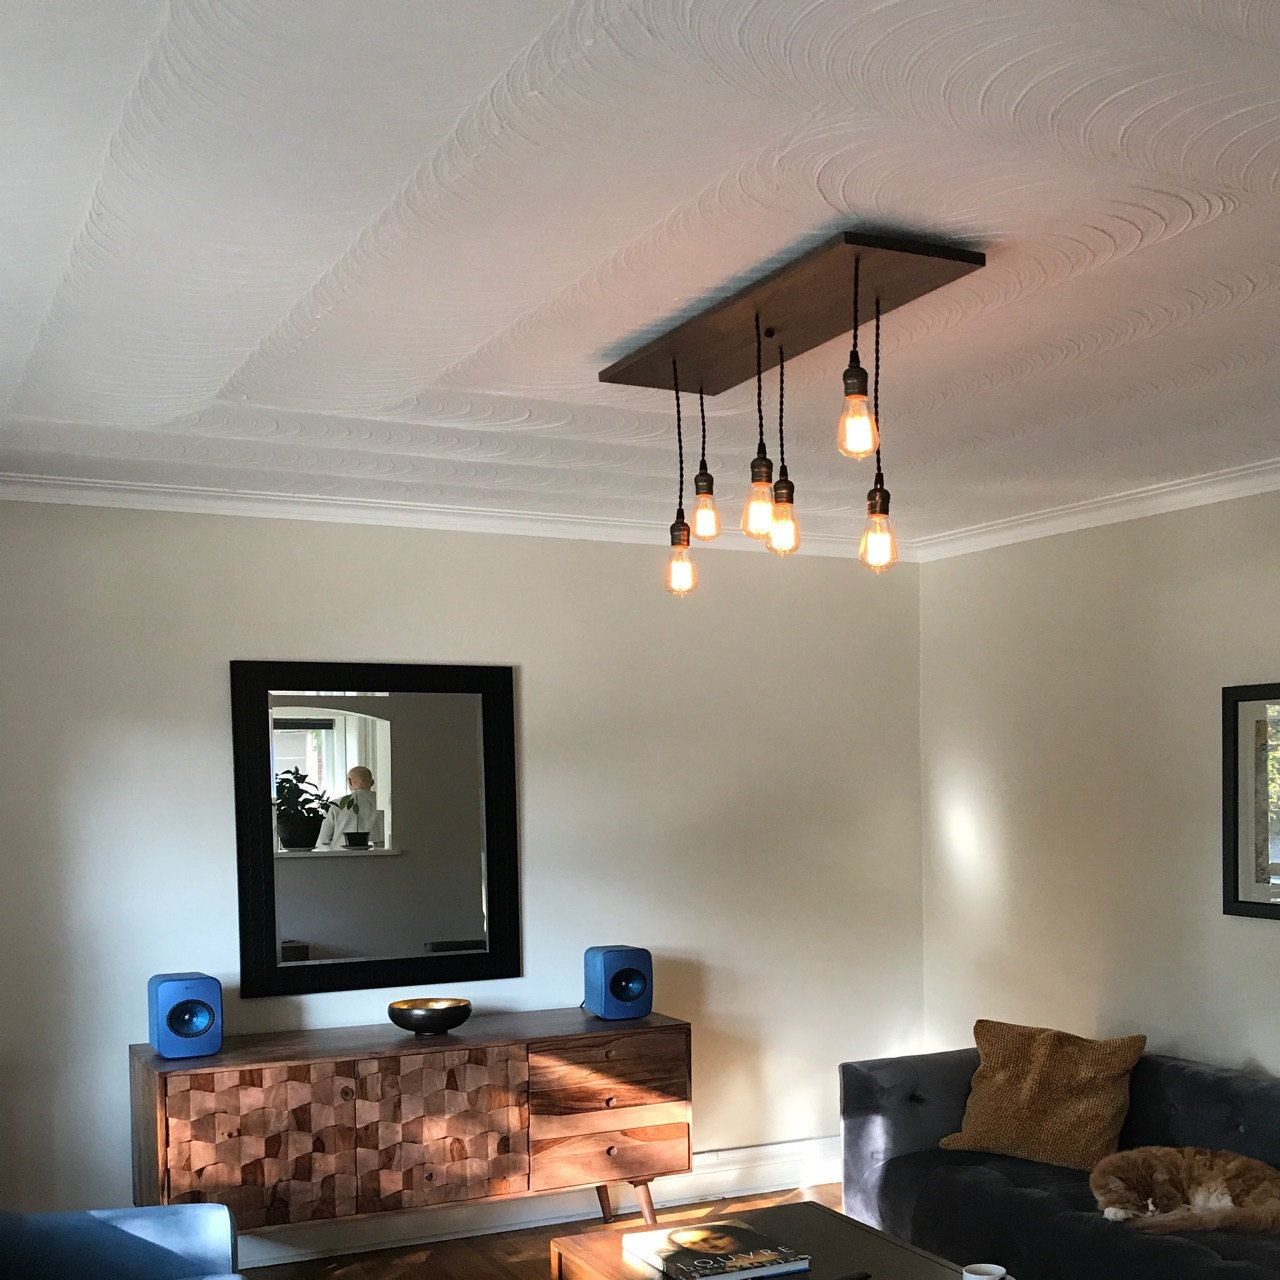 Family Room Lighting Family Room Wood Ceiling Lights Family Room Lighting #rustic #living #room #light #fixtures